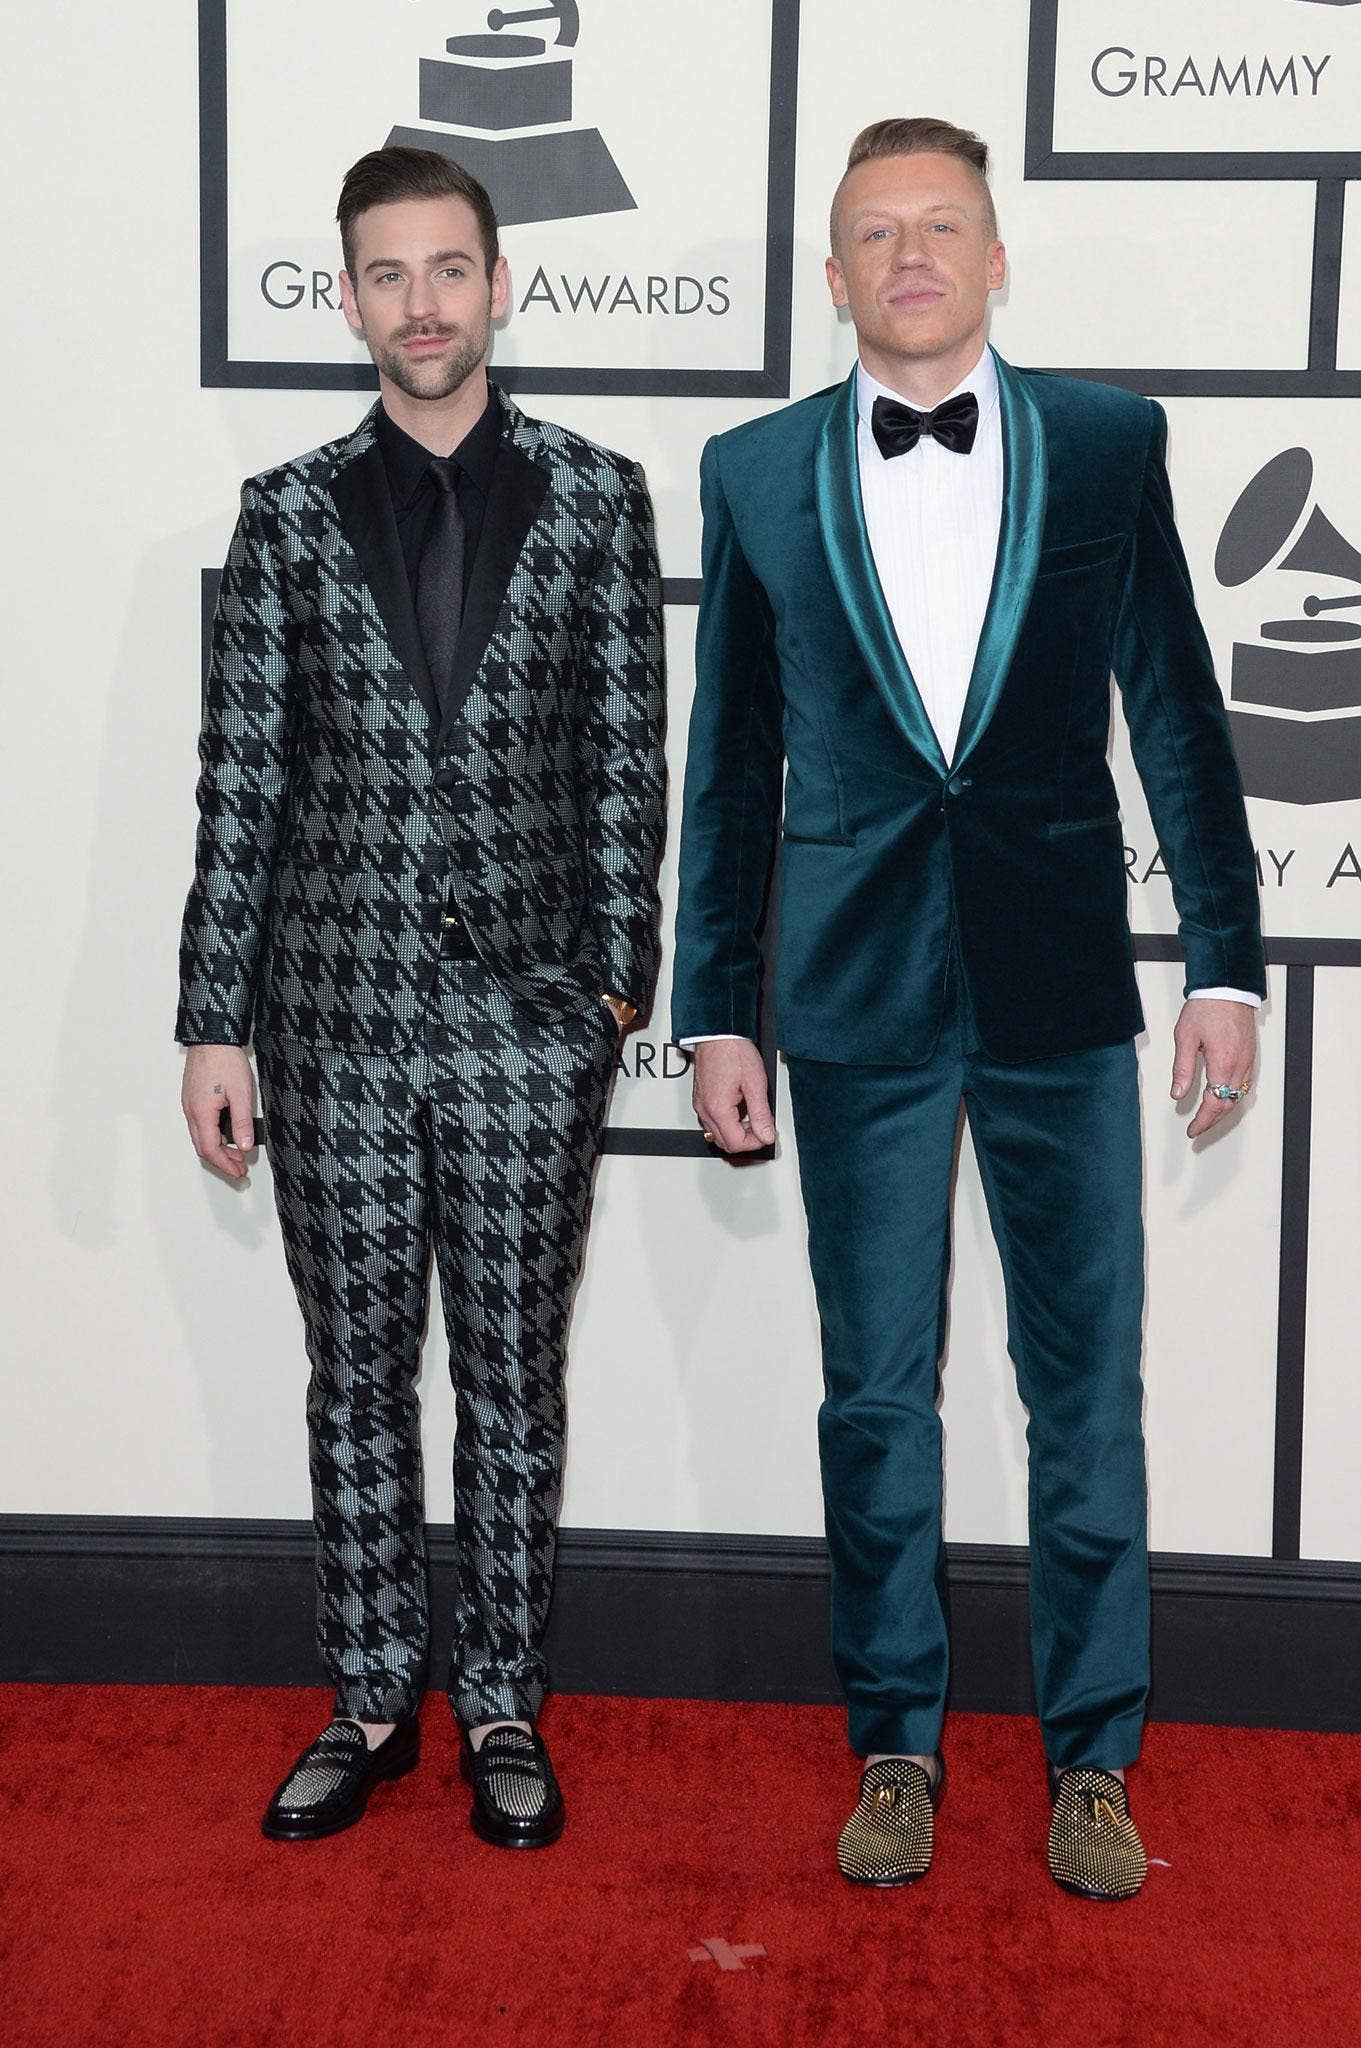 Suits you :Macklemore (right) with Ryan Lewis at the Grammy Awards